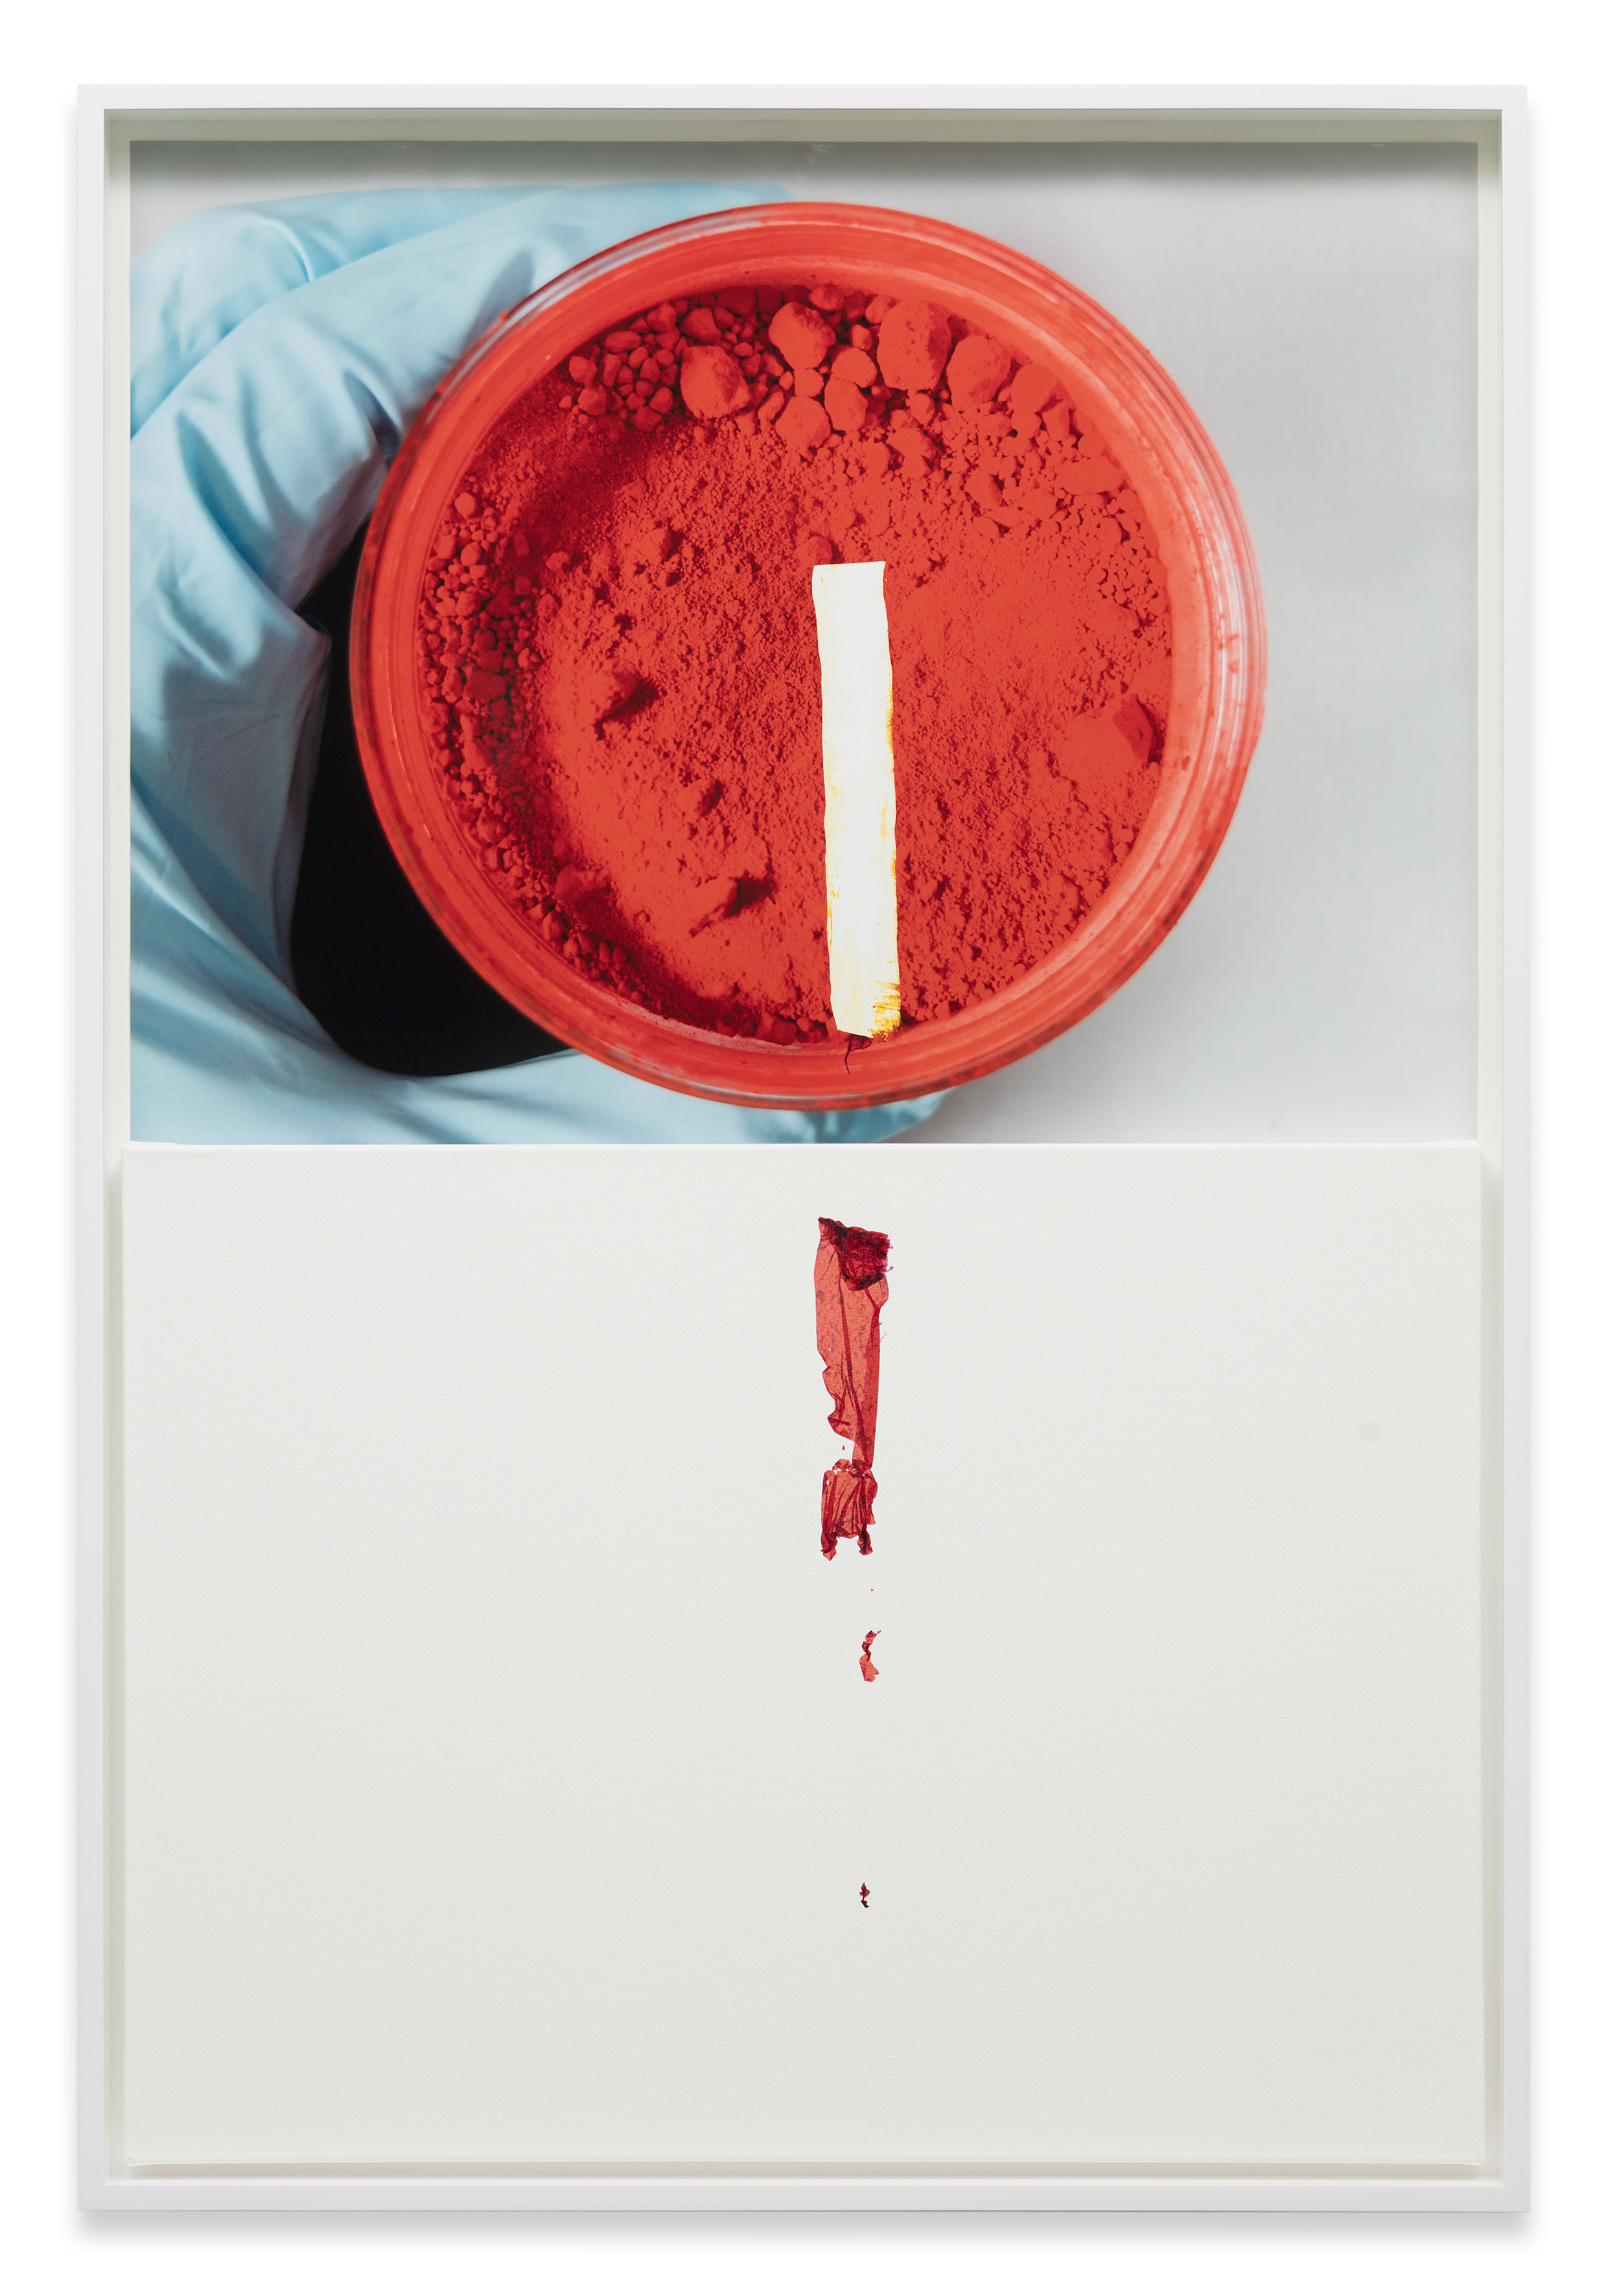 """Analia Saban. """"Markings (from Cadmium Red, L. Cornelissen & Son)"""" (2016). Digital C-print on resin-coated paper and primed canvas. 60 x 40 INCHES. Courtesy the artist and Sprüth Magers. Photo: Timo Ohler"""